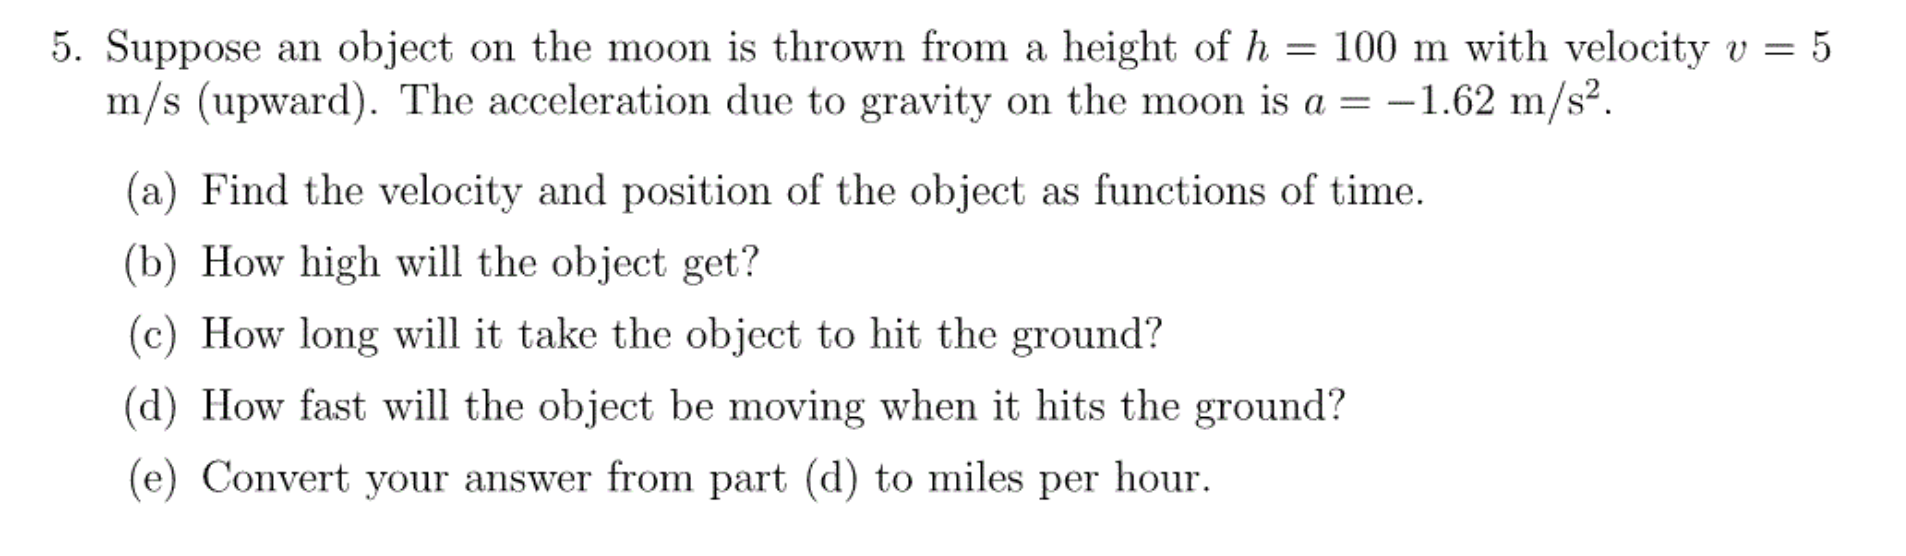 5. Suppose an object on the moon is thrown from a height of h = 100 m with velocity v m/s (upward). The acceleration due to gravity on the moon is a = -1.62 m/s2. 5 (a) Find the velocity and position of the object as functions of time (b) How high will the object get? (c) How long will it take the object to hit the ground? (d) How fast will the object be moving when it hits the ground? (e) Convert your answer from part (d) to miles per hour